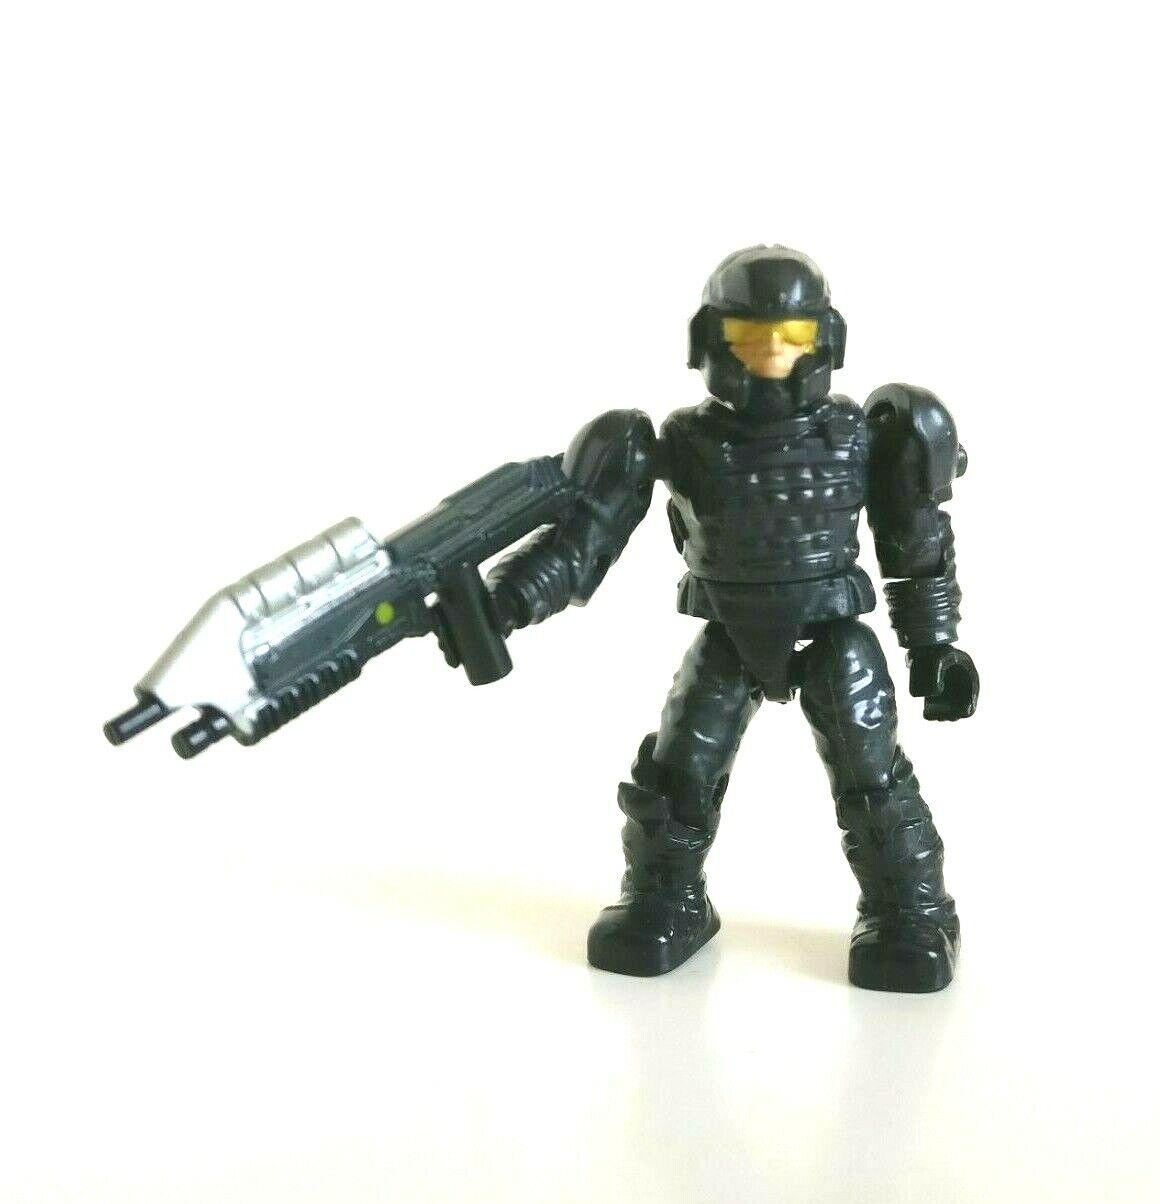 Halo Mega Bloks UNSC Stealth Black Marine with Battle Rifle Figure